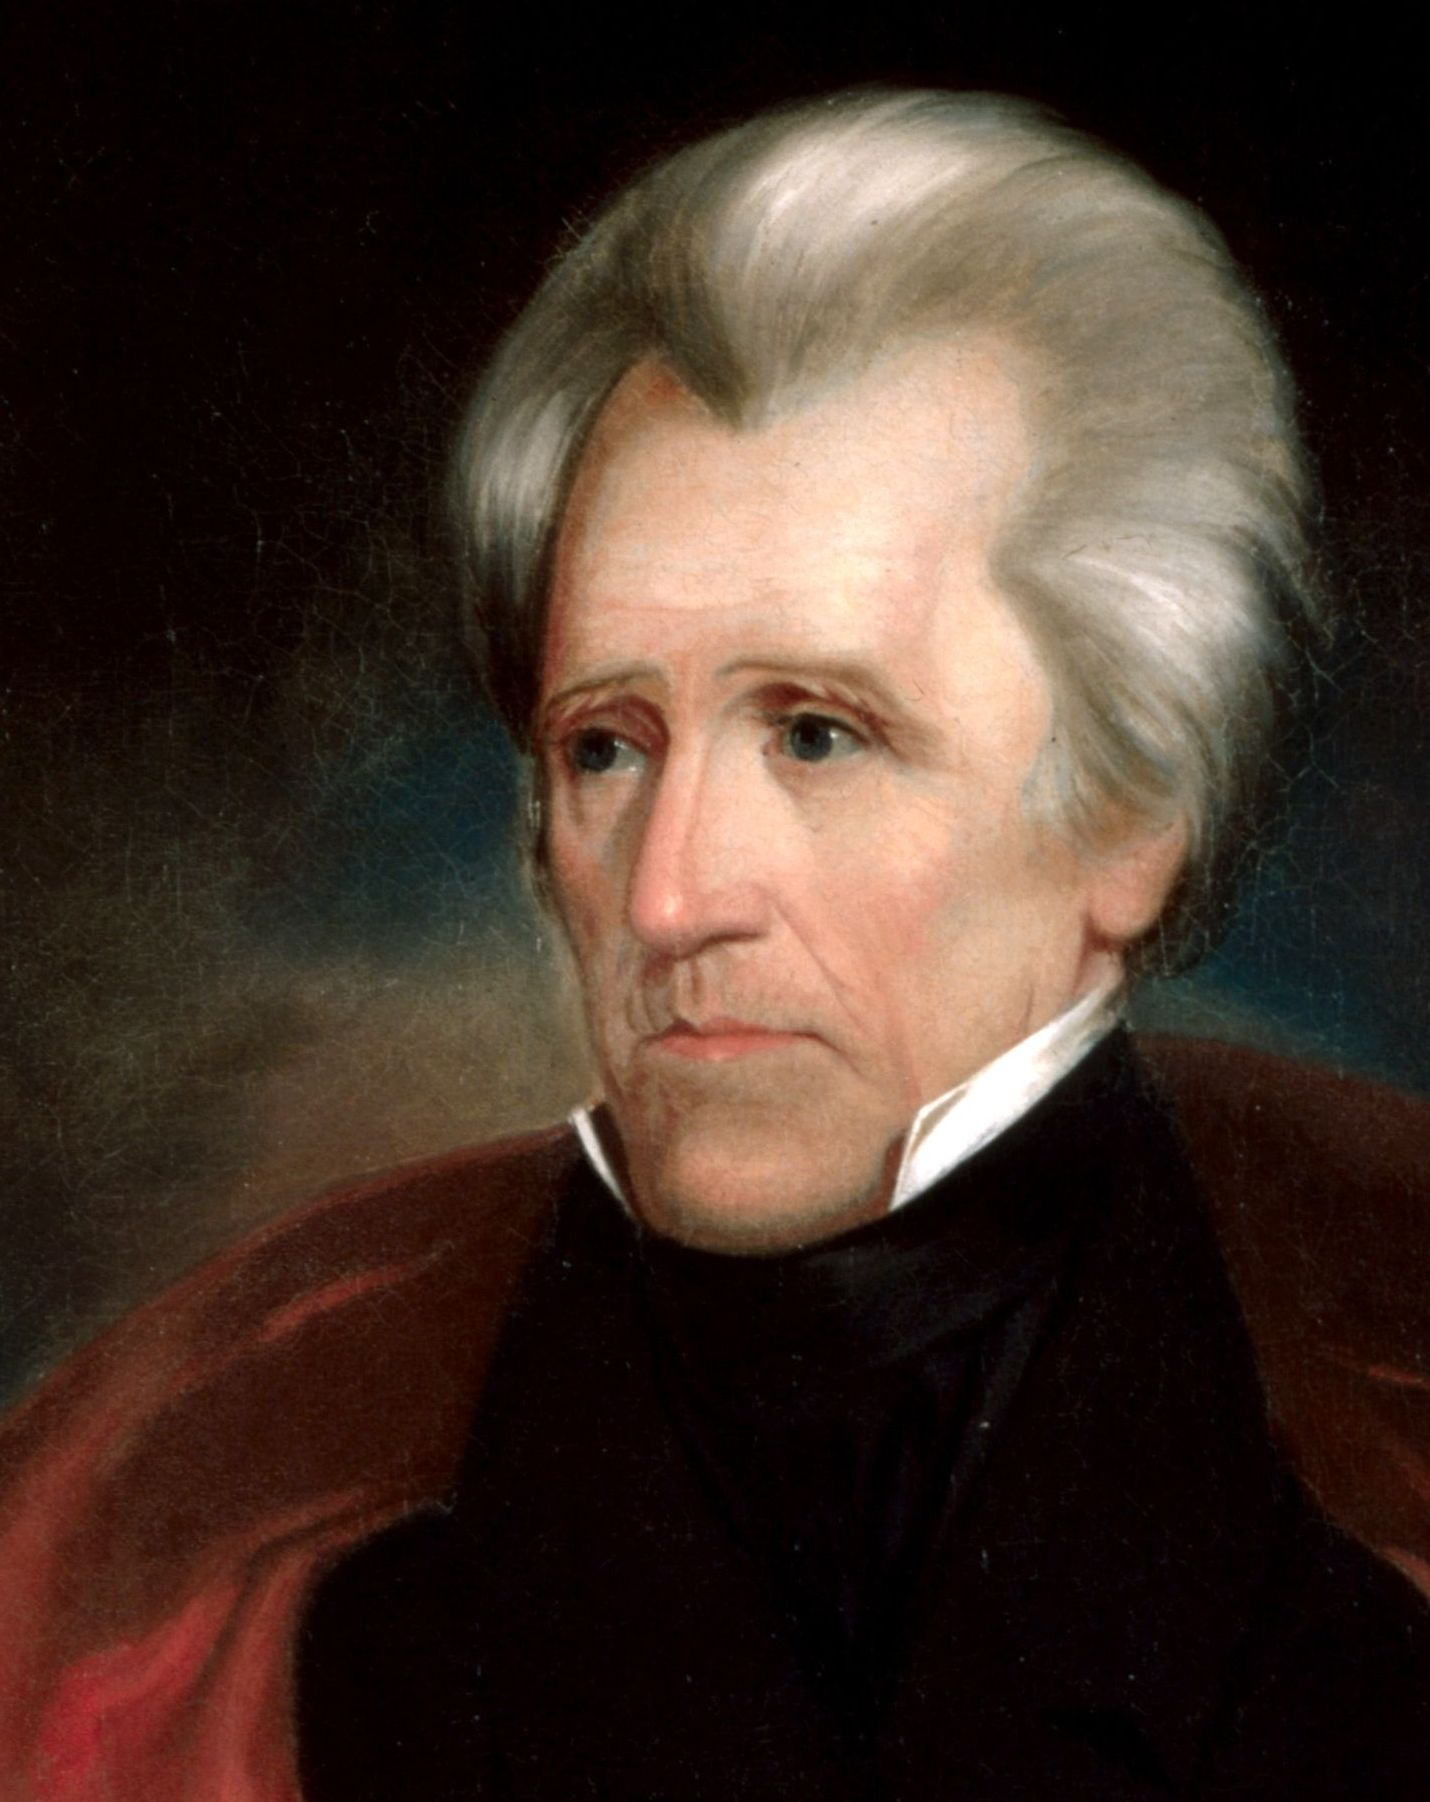 Andrew Jackson broke with many precedents during his two terms.